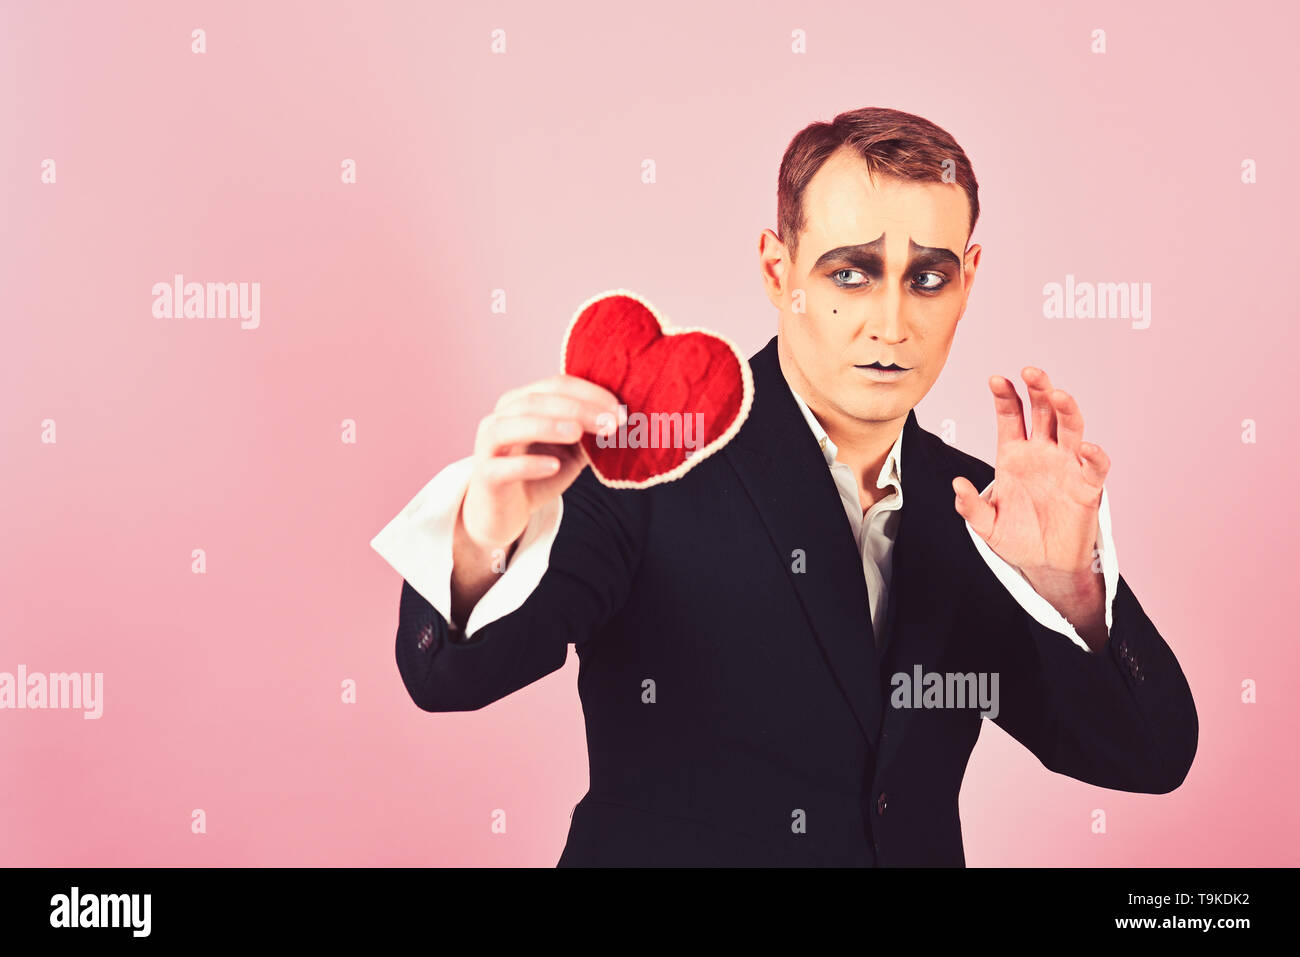 His story of boundless love. Theatre actor pantomime falling in love. Mime actor with love symbol. Mime man hold red heart for valentines day. Love - Stock Image